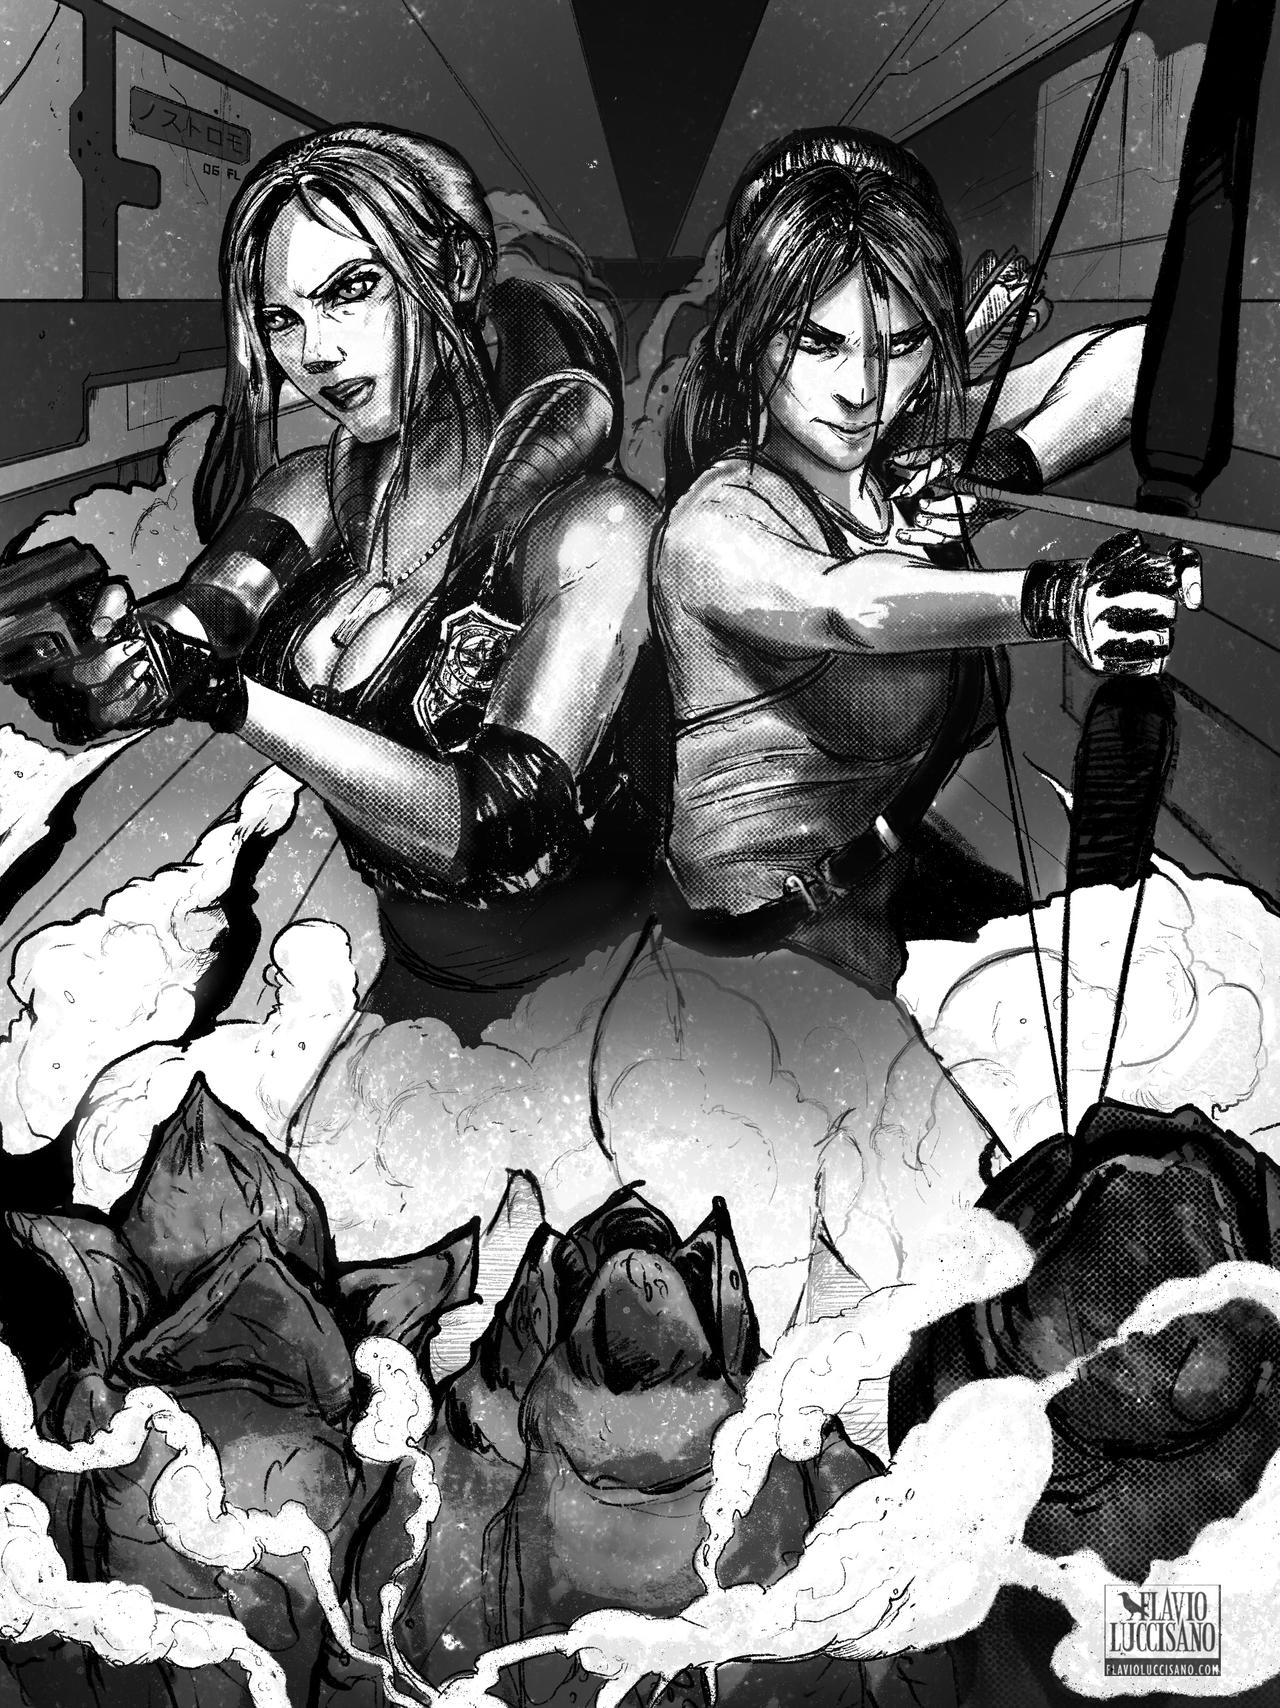 sonya_and_lara_by_flavioluccisano_ddj2gj